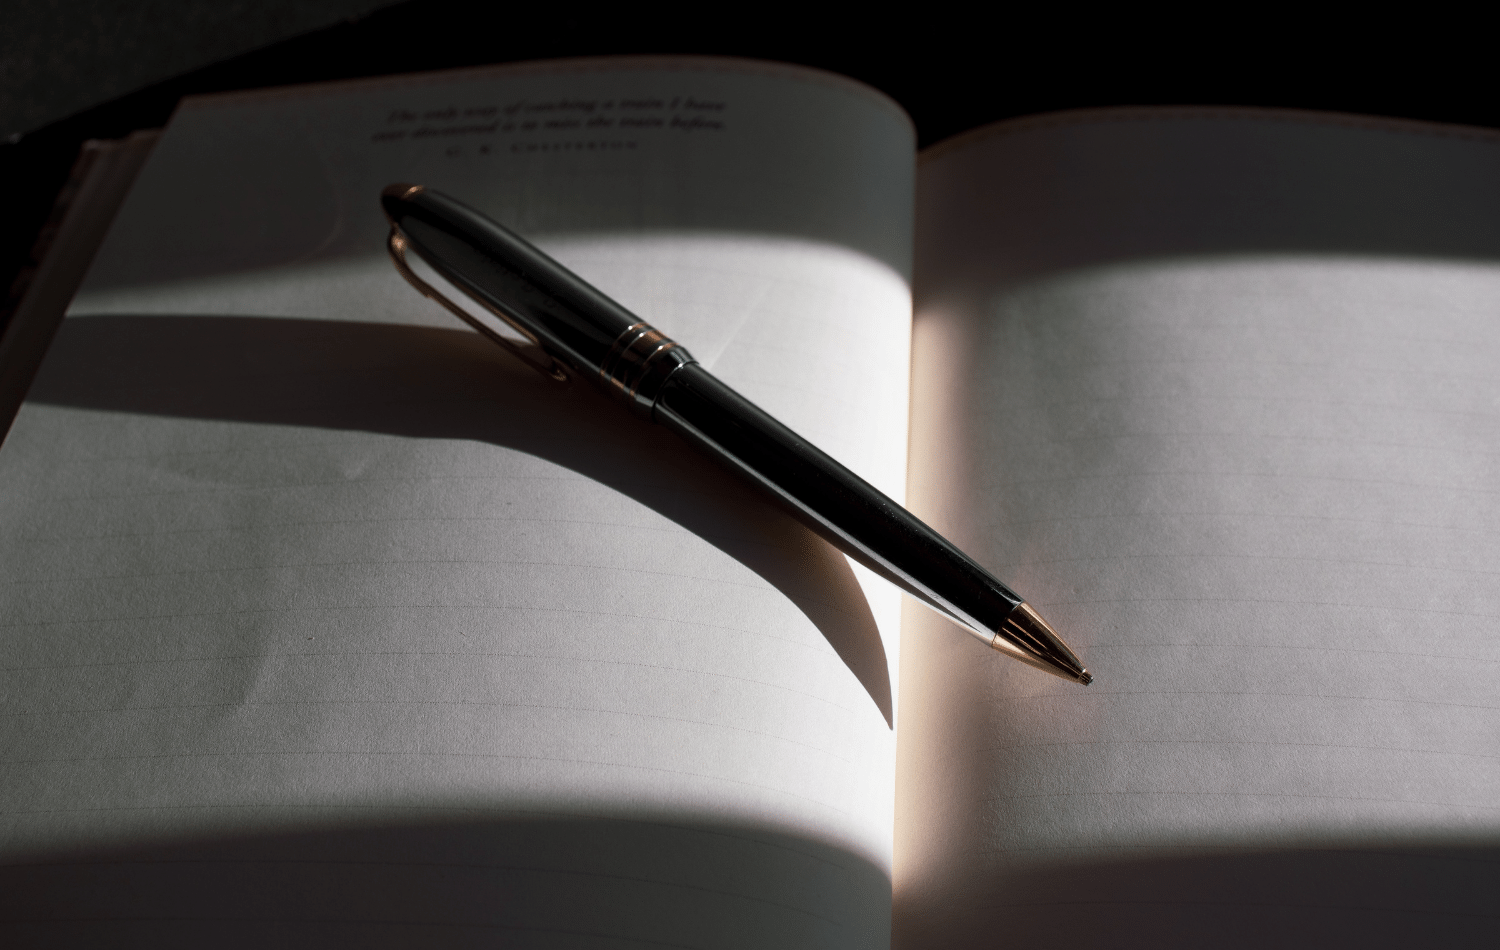 Brand storytelling - Shows a pen and notebook